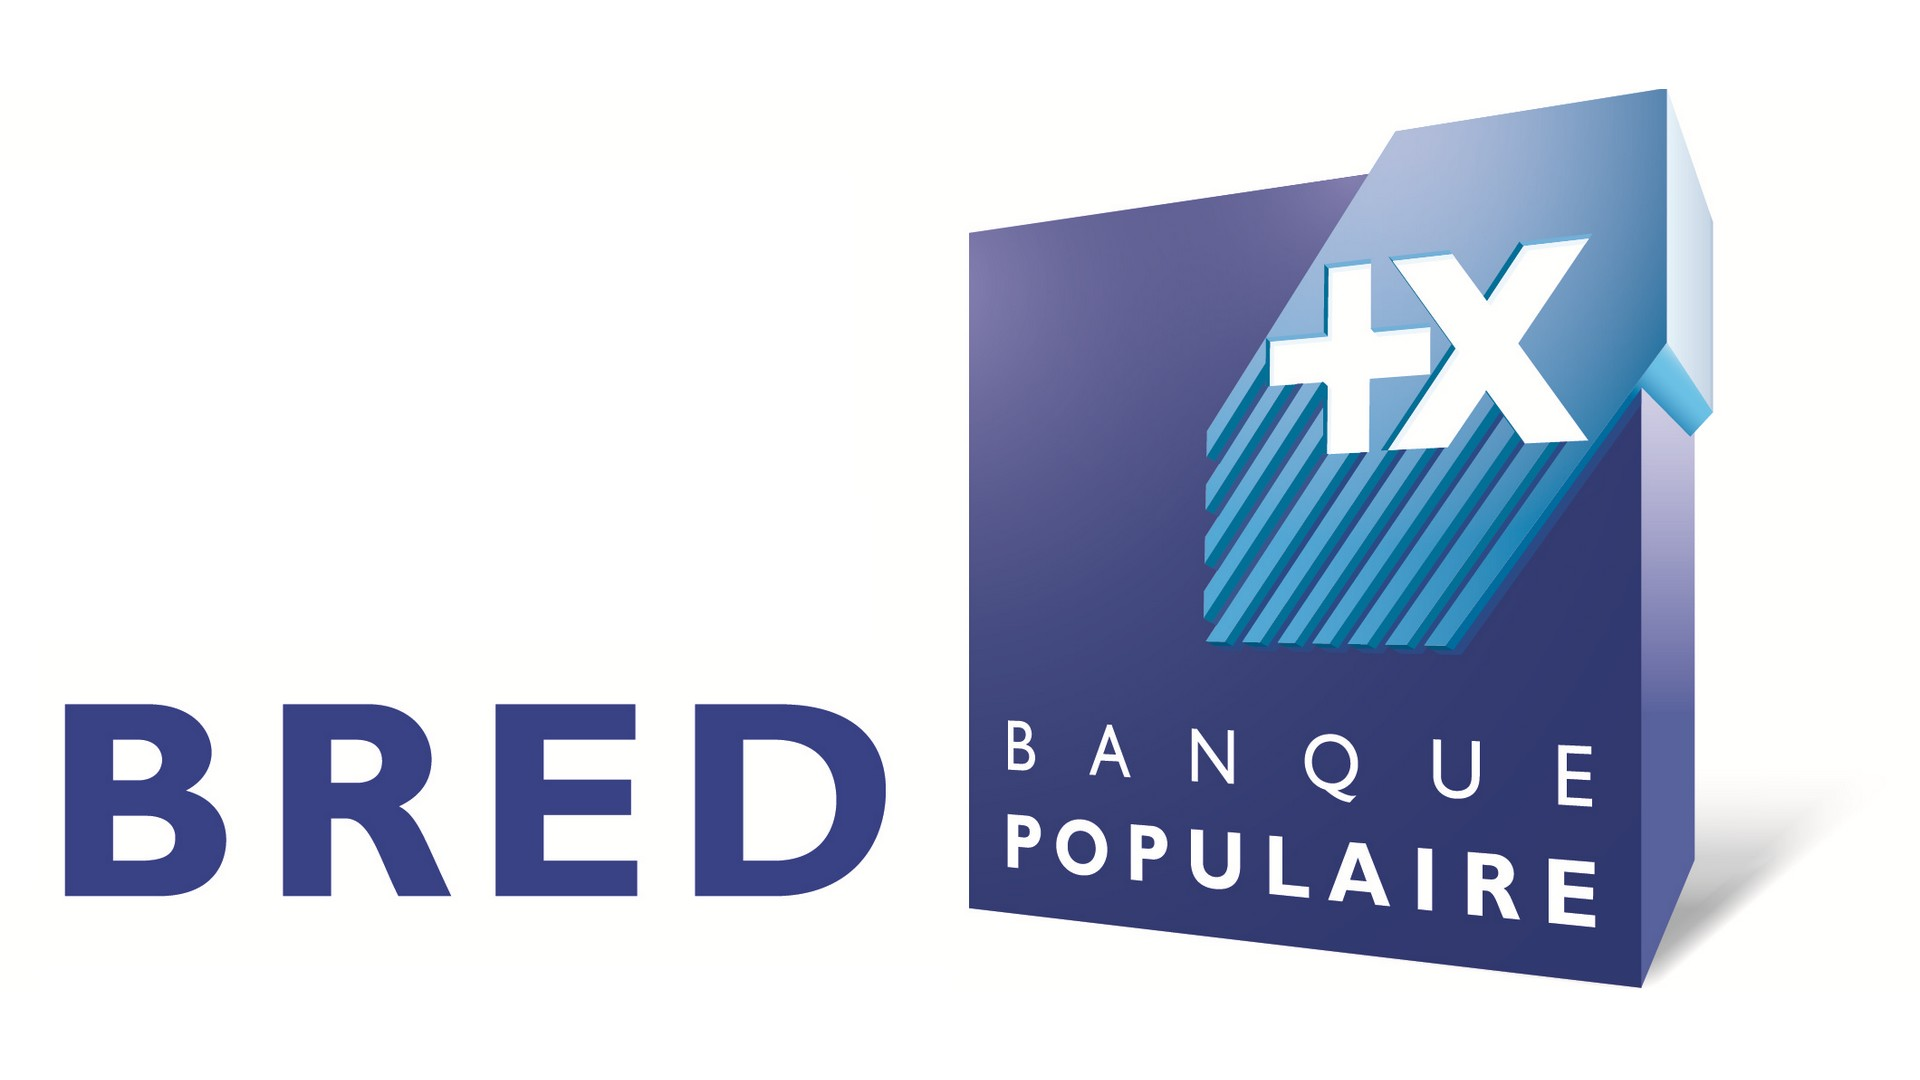 Bred Banque Populaire (1) logo